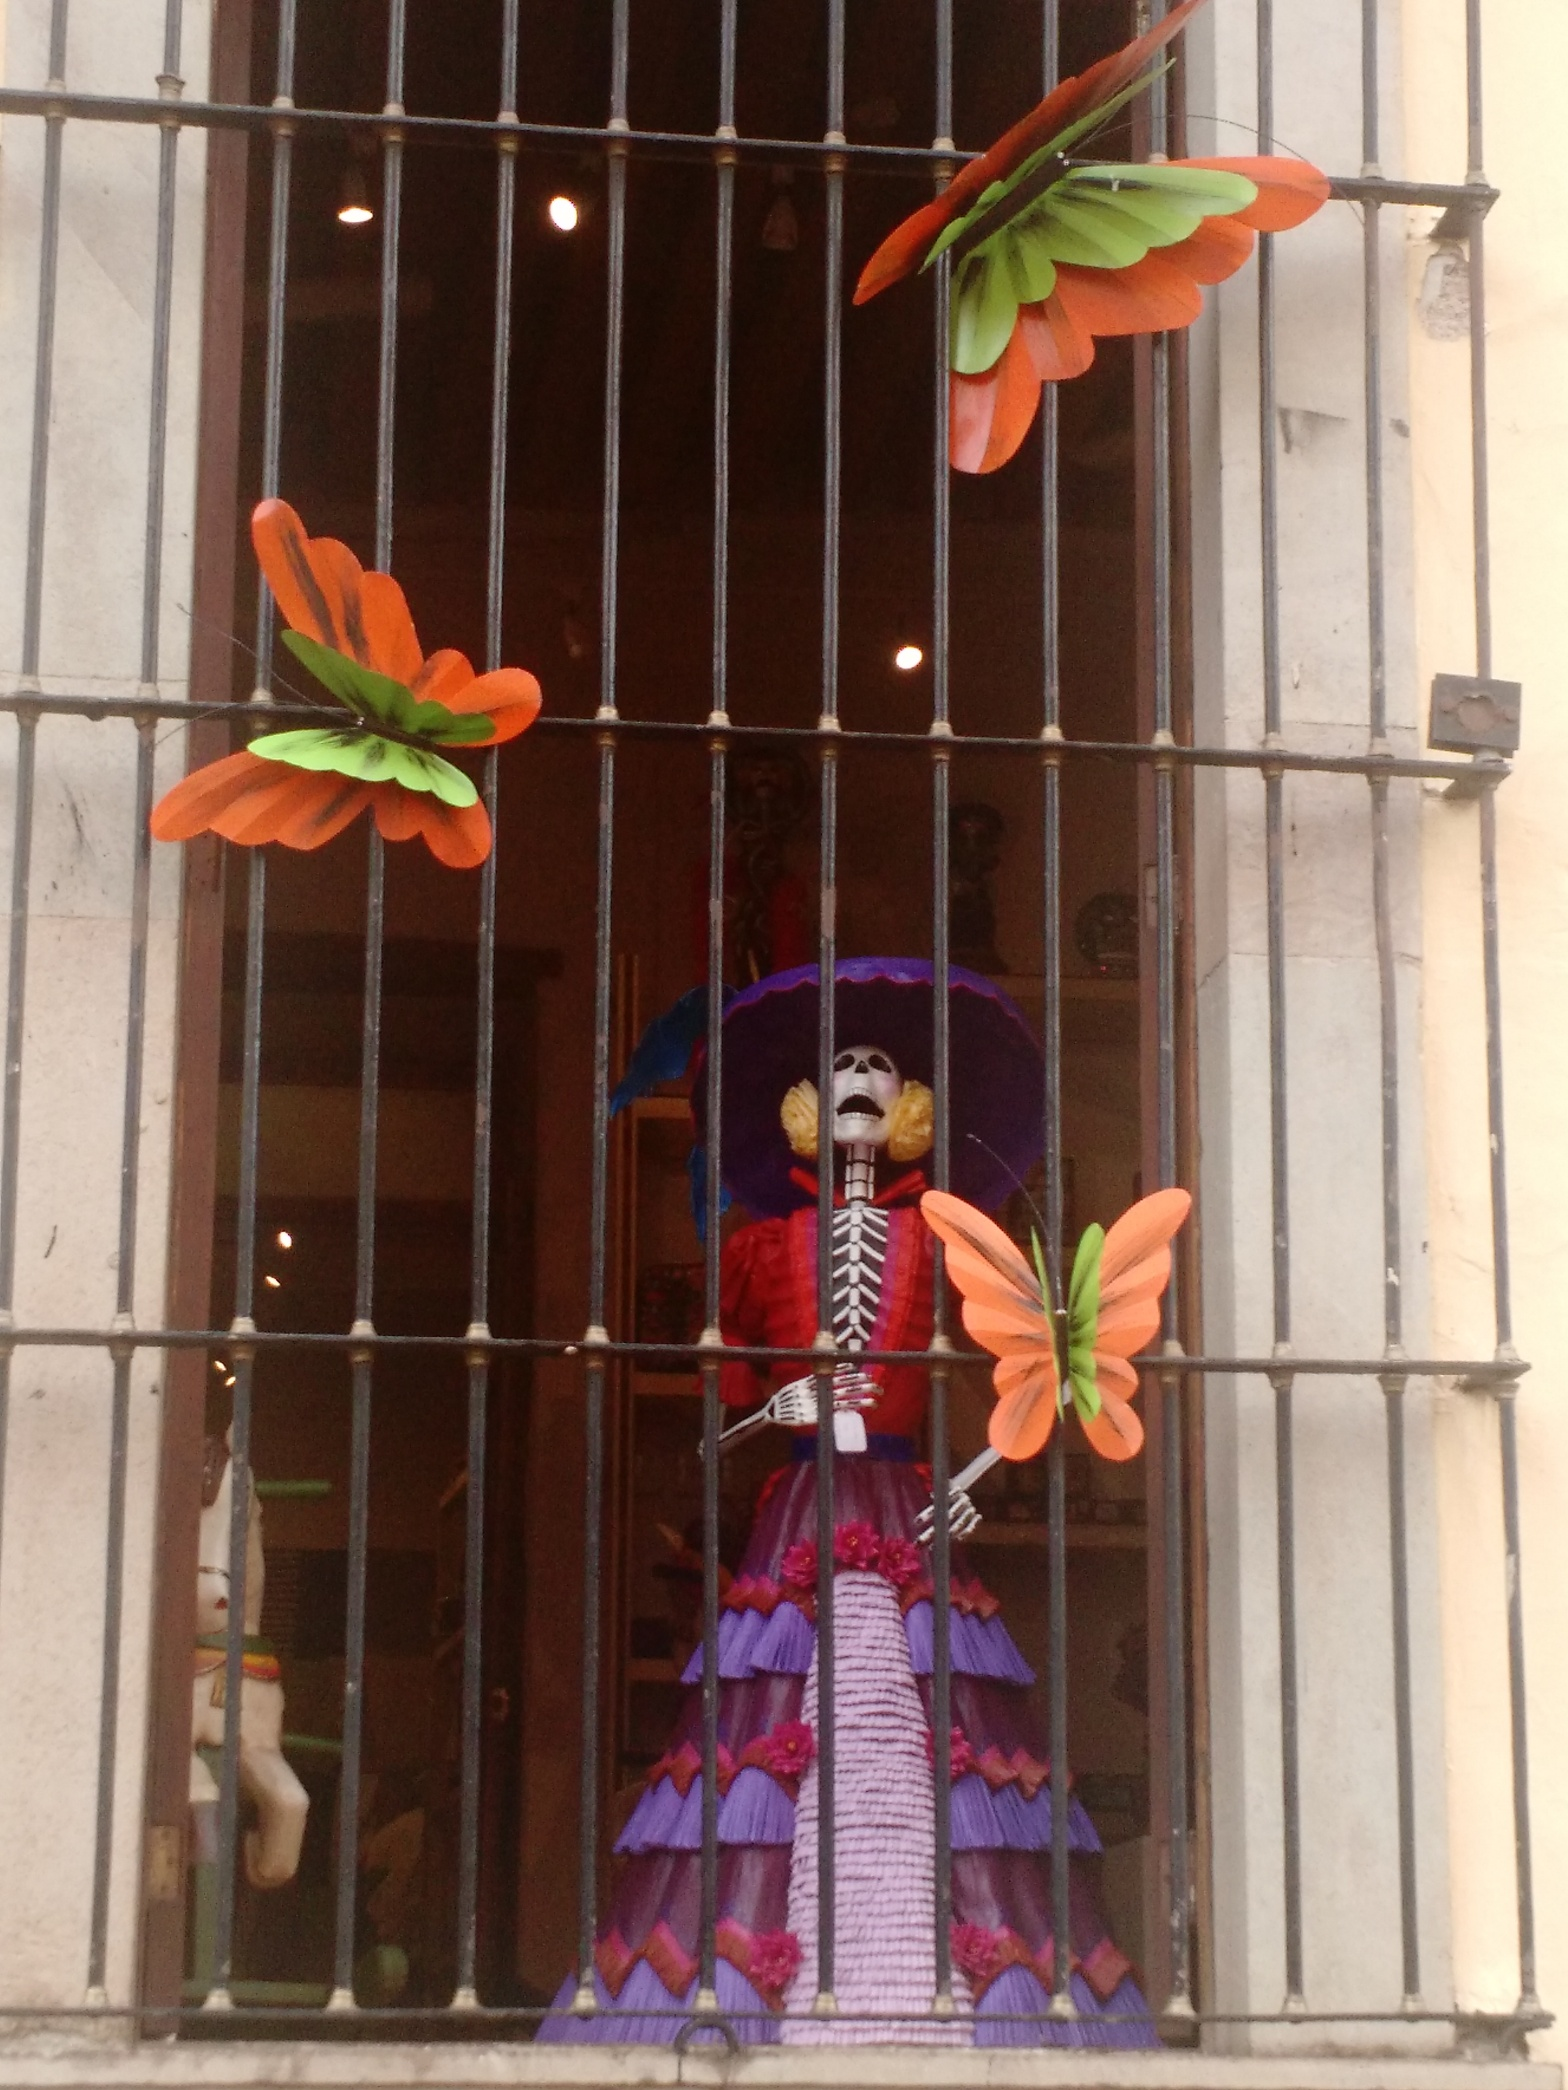 Skeleton art in doorway Guanajuato Mexico